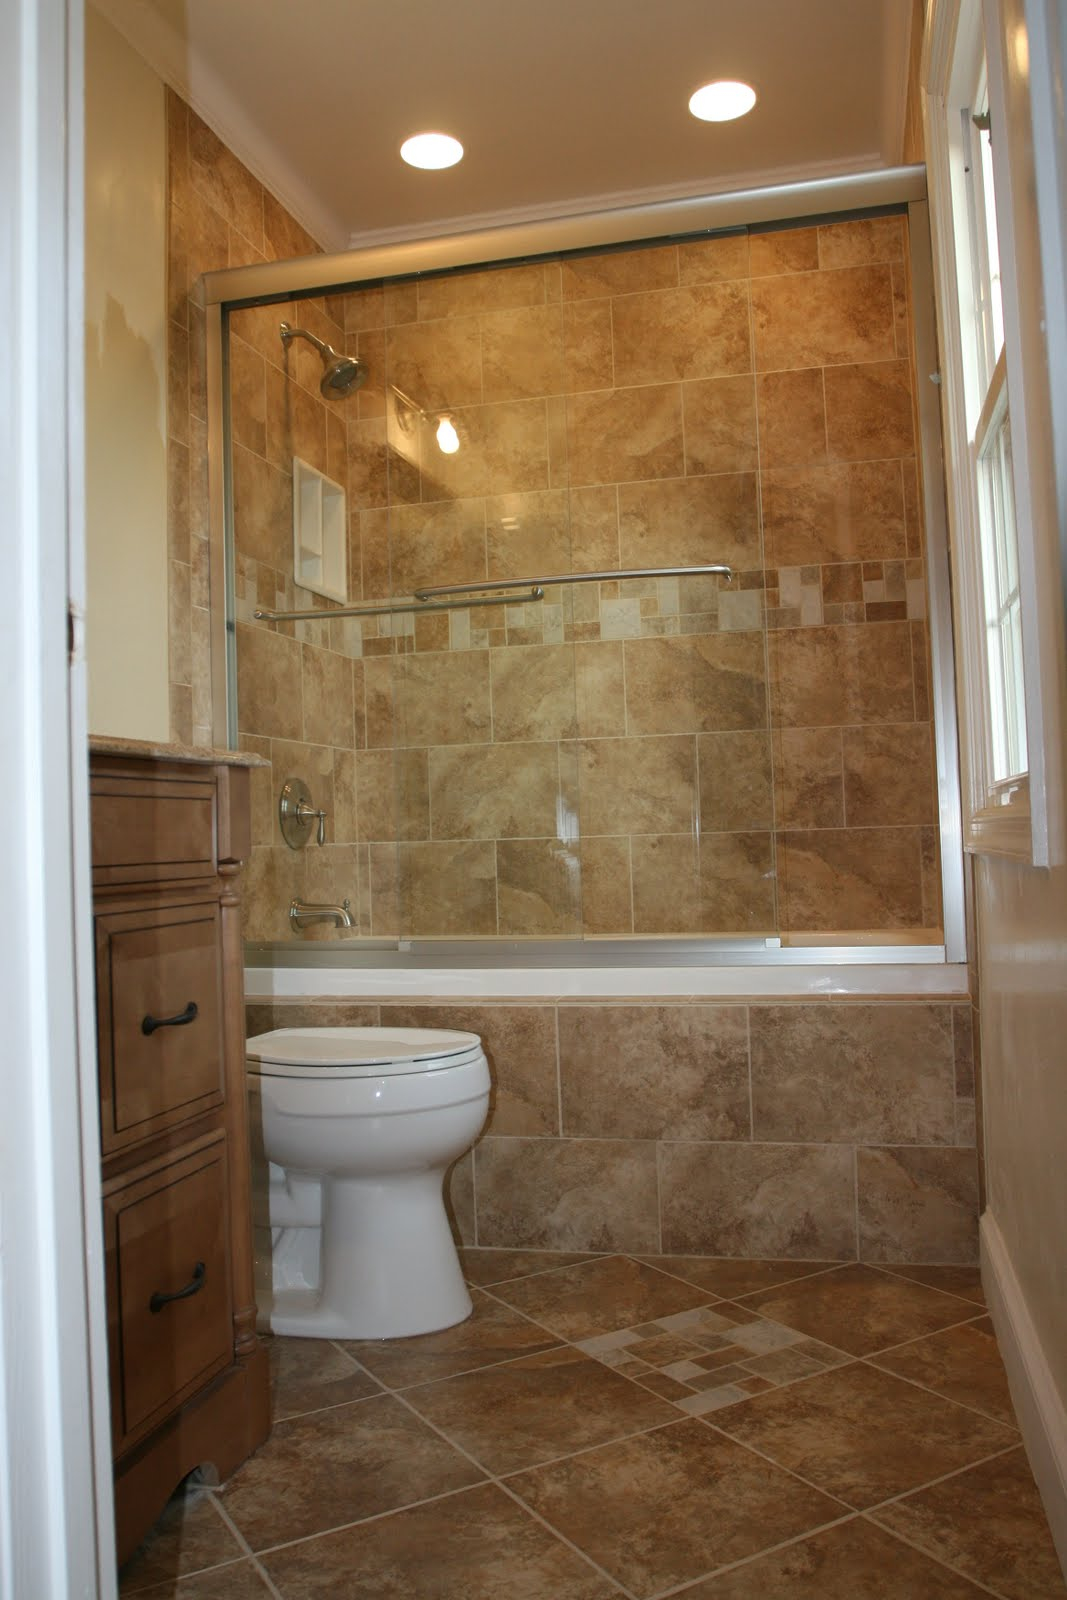 Bathroom remodeling design ideas tile shower niches for Bathroom tiles images gallery